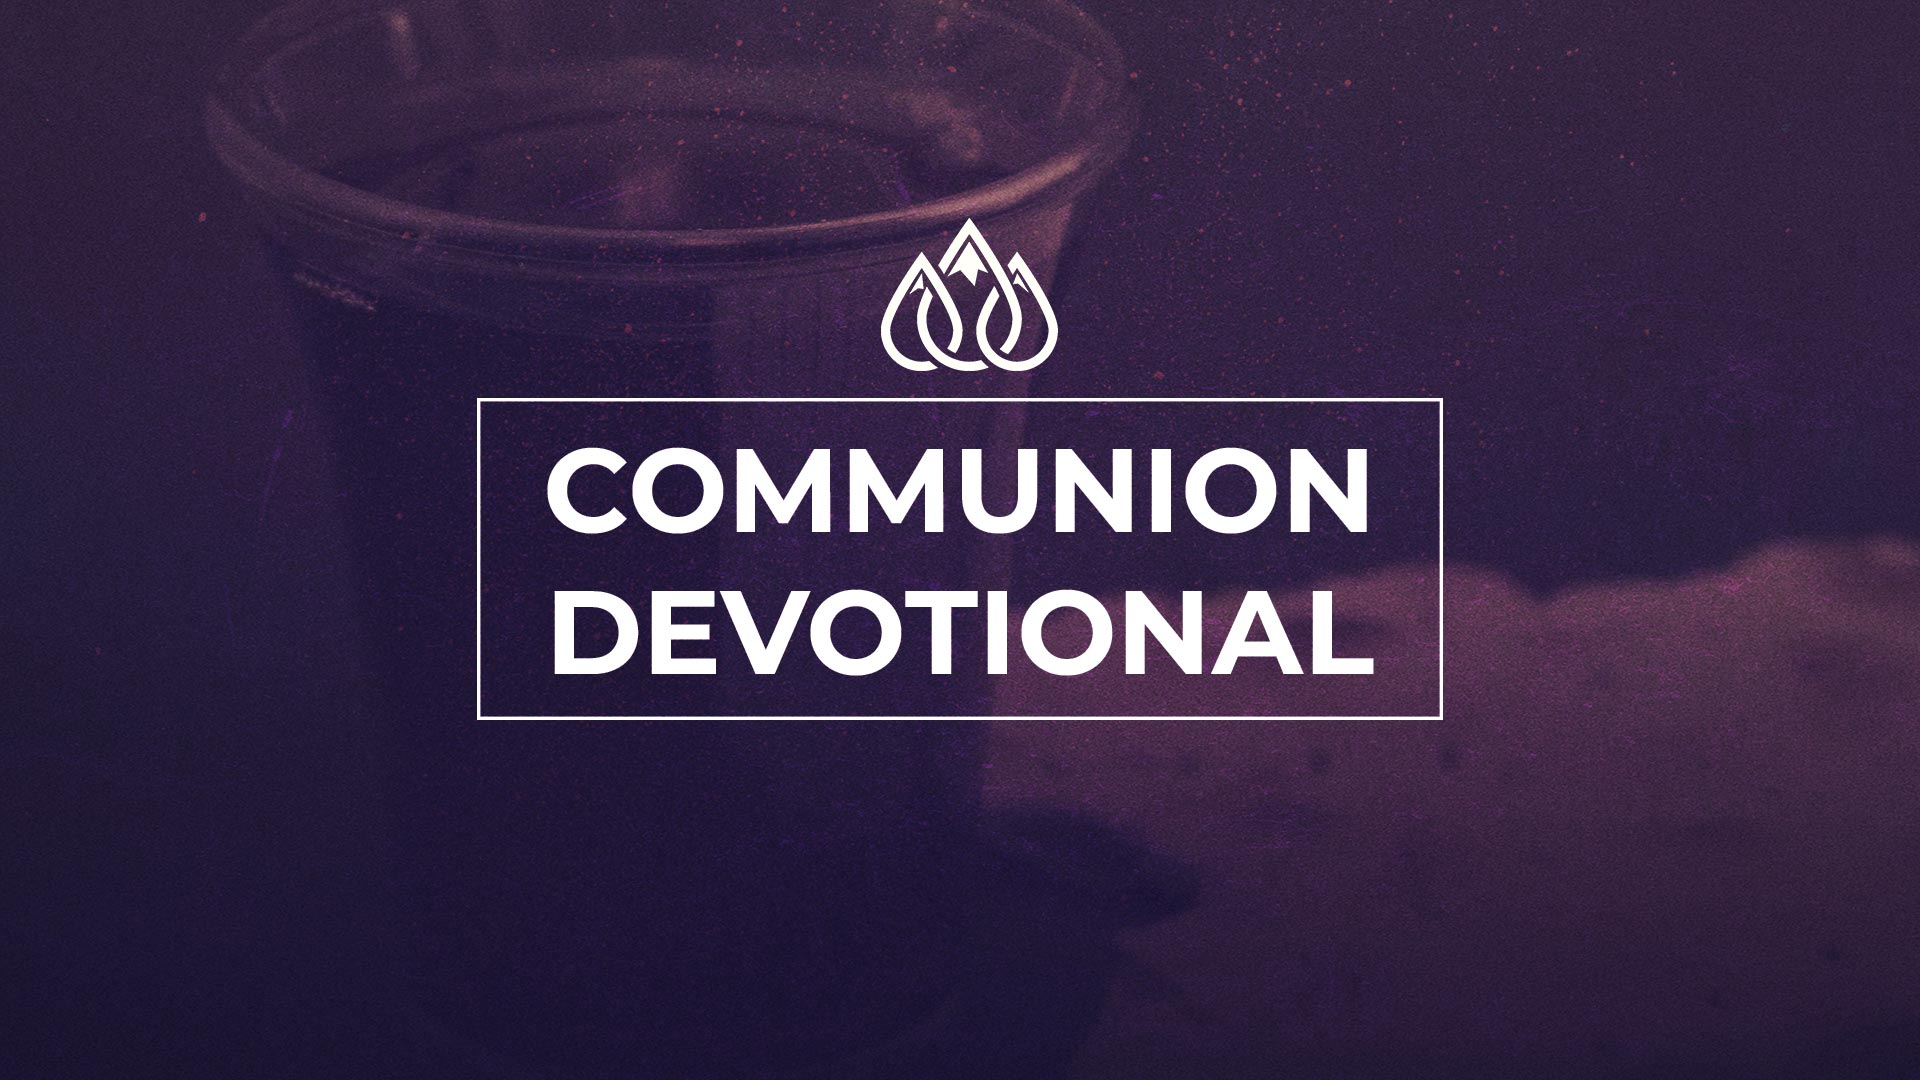 Communion Devotional Image